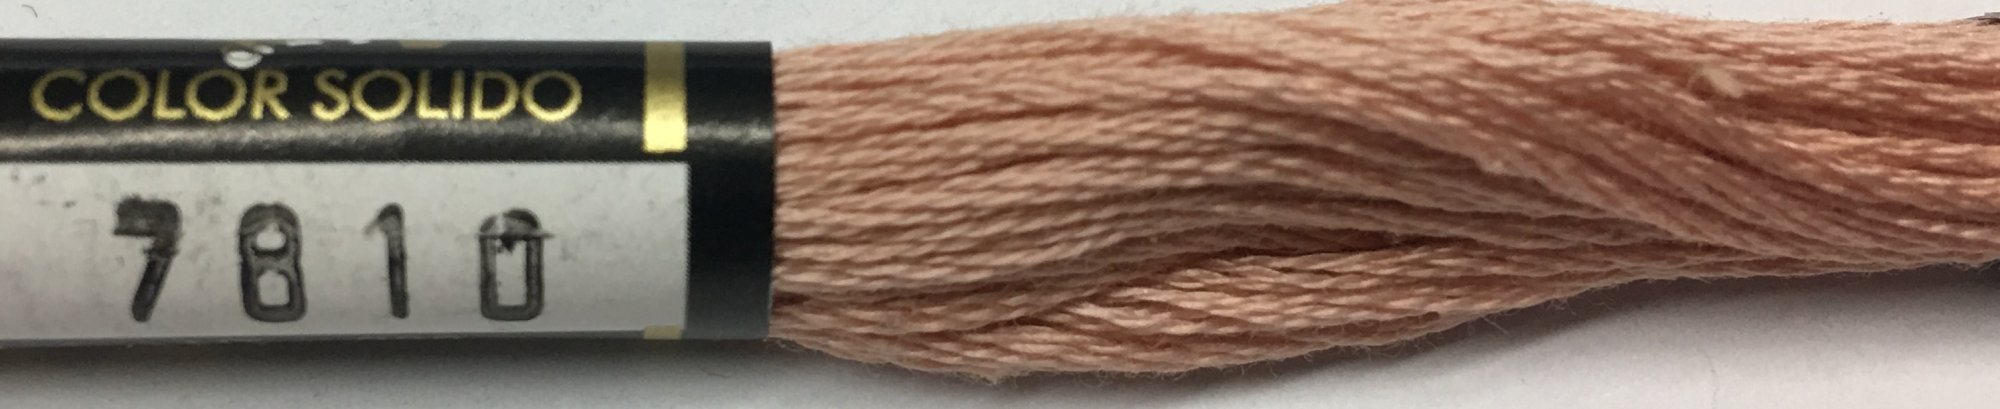 F7810 Presencia 100% Mercerized Finca Cotton 6 ply Embroidery Floss 8 meter skein